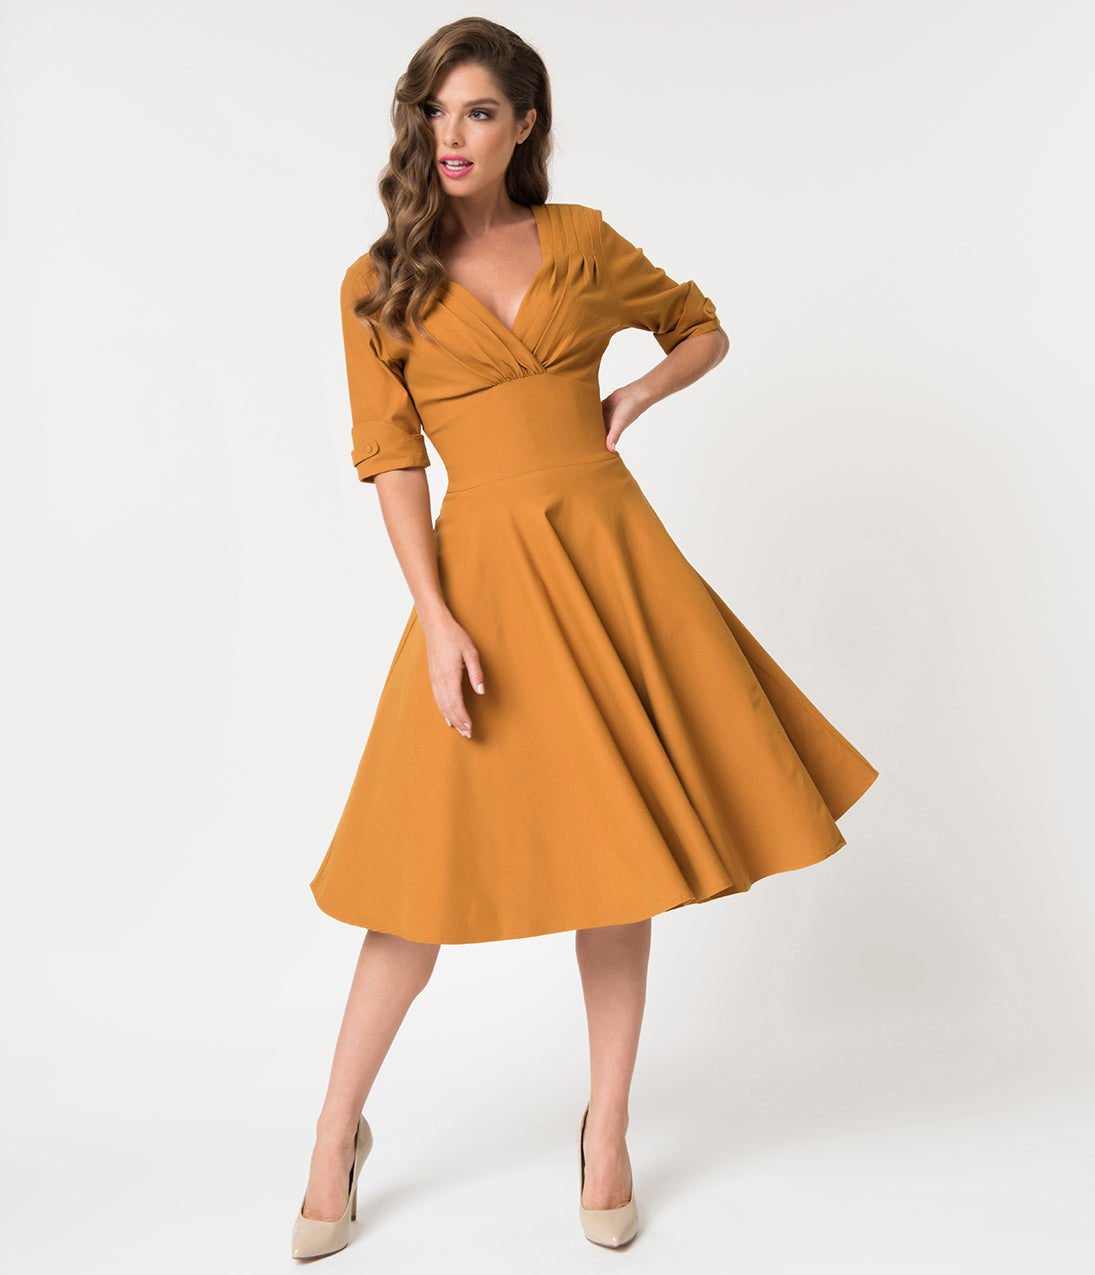 Dress Like the Marvelous Mrs. Maisel Unique Vintage 1950S Mustard Yellow Delores Swing Dress With Sleeves $88.00 AT vintagedancer.com